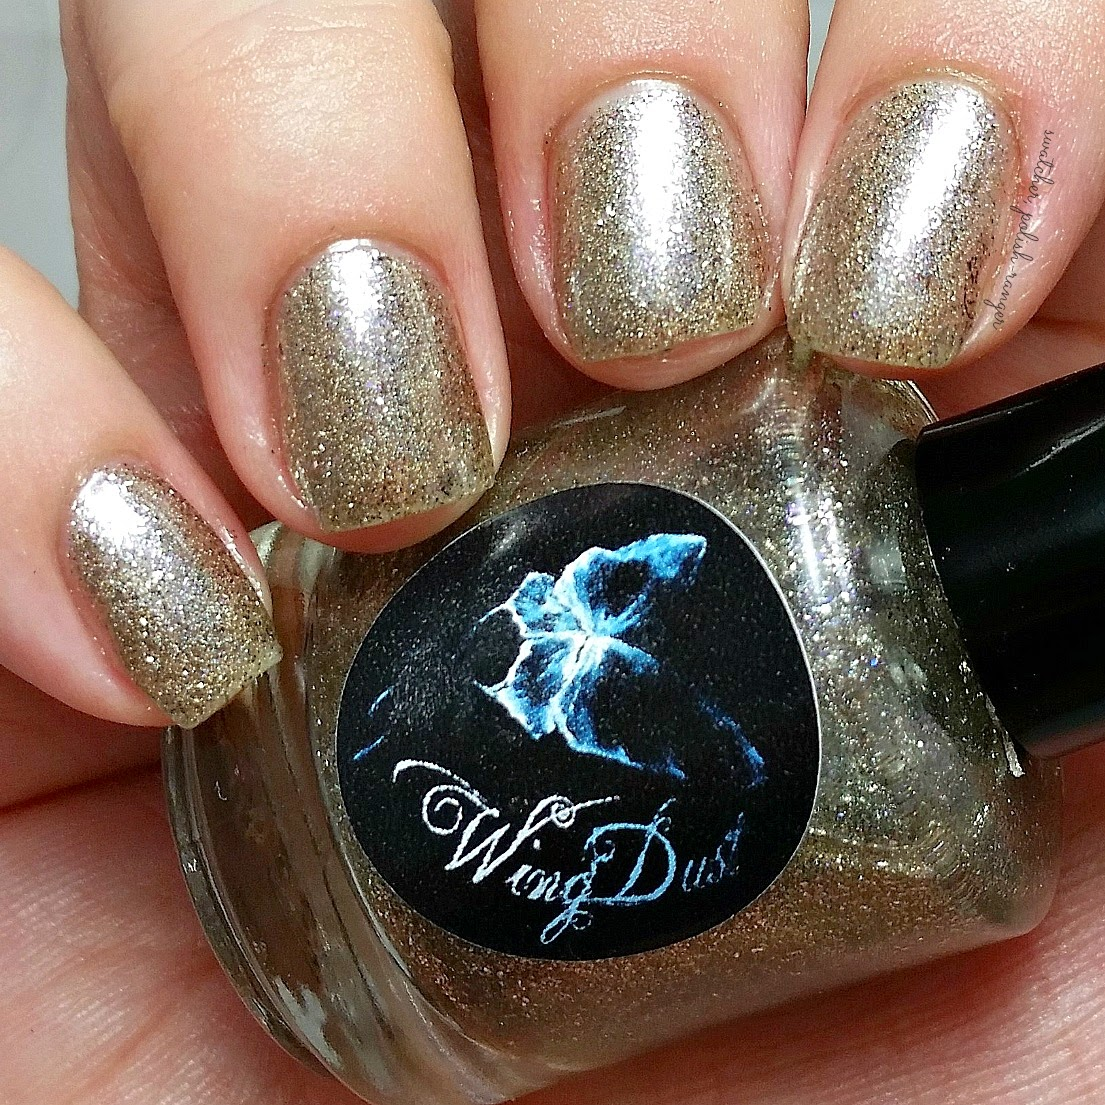 swatcher, polish-ranger | WingDust Collections Perfect Little Satellite swatch